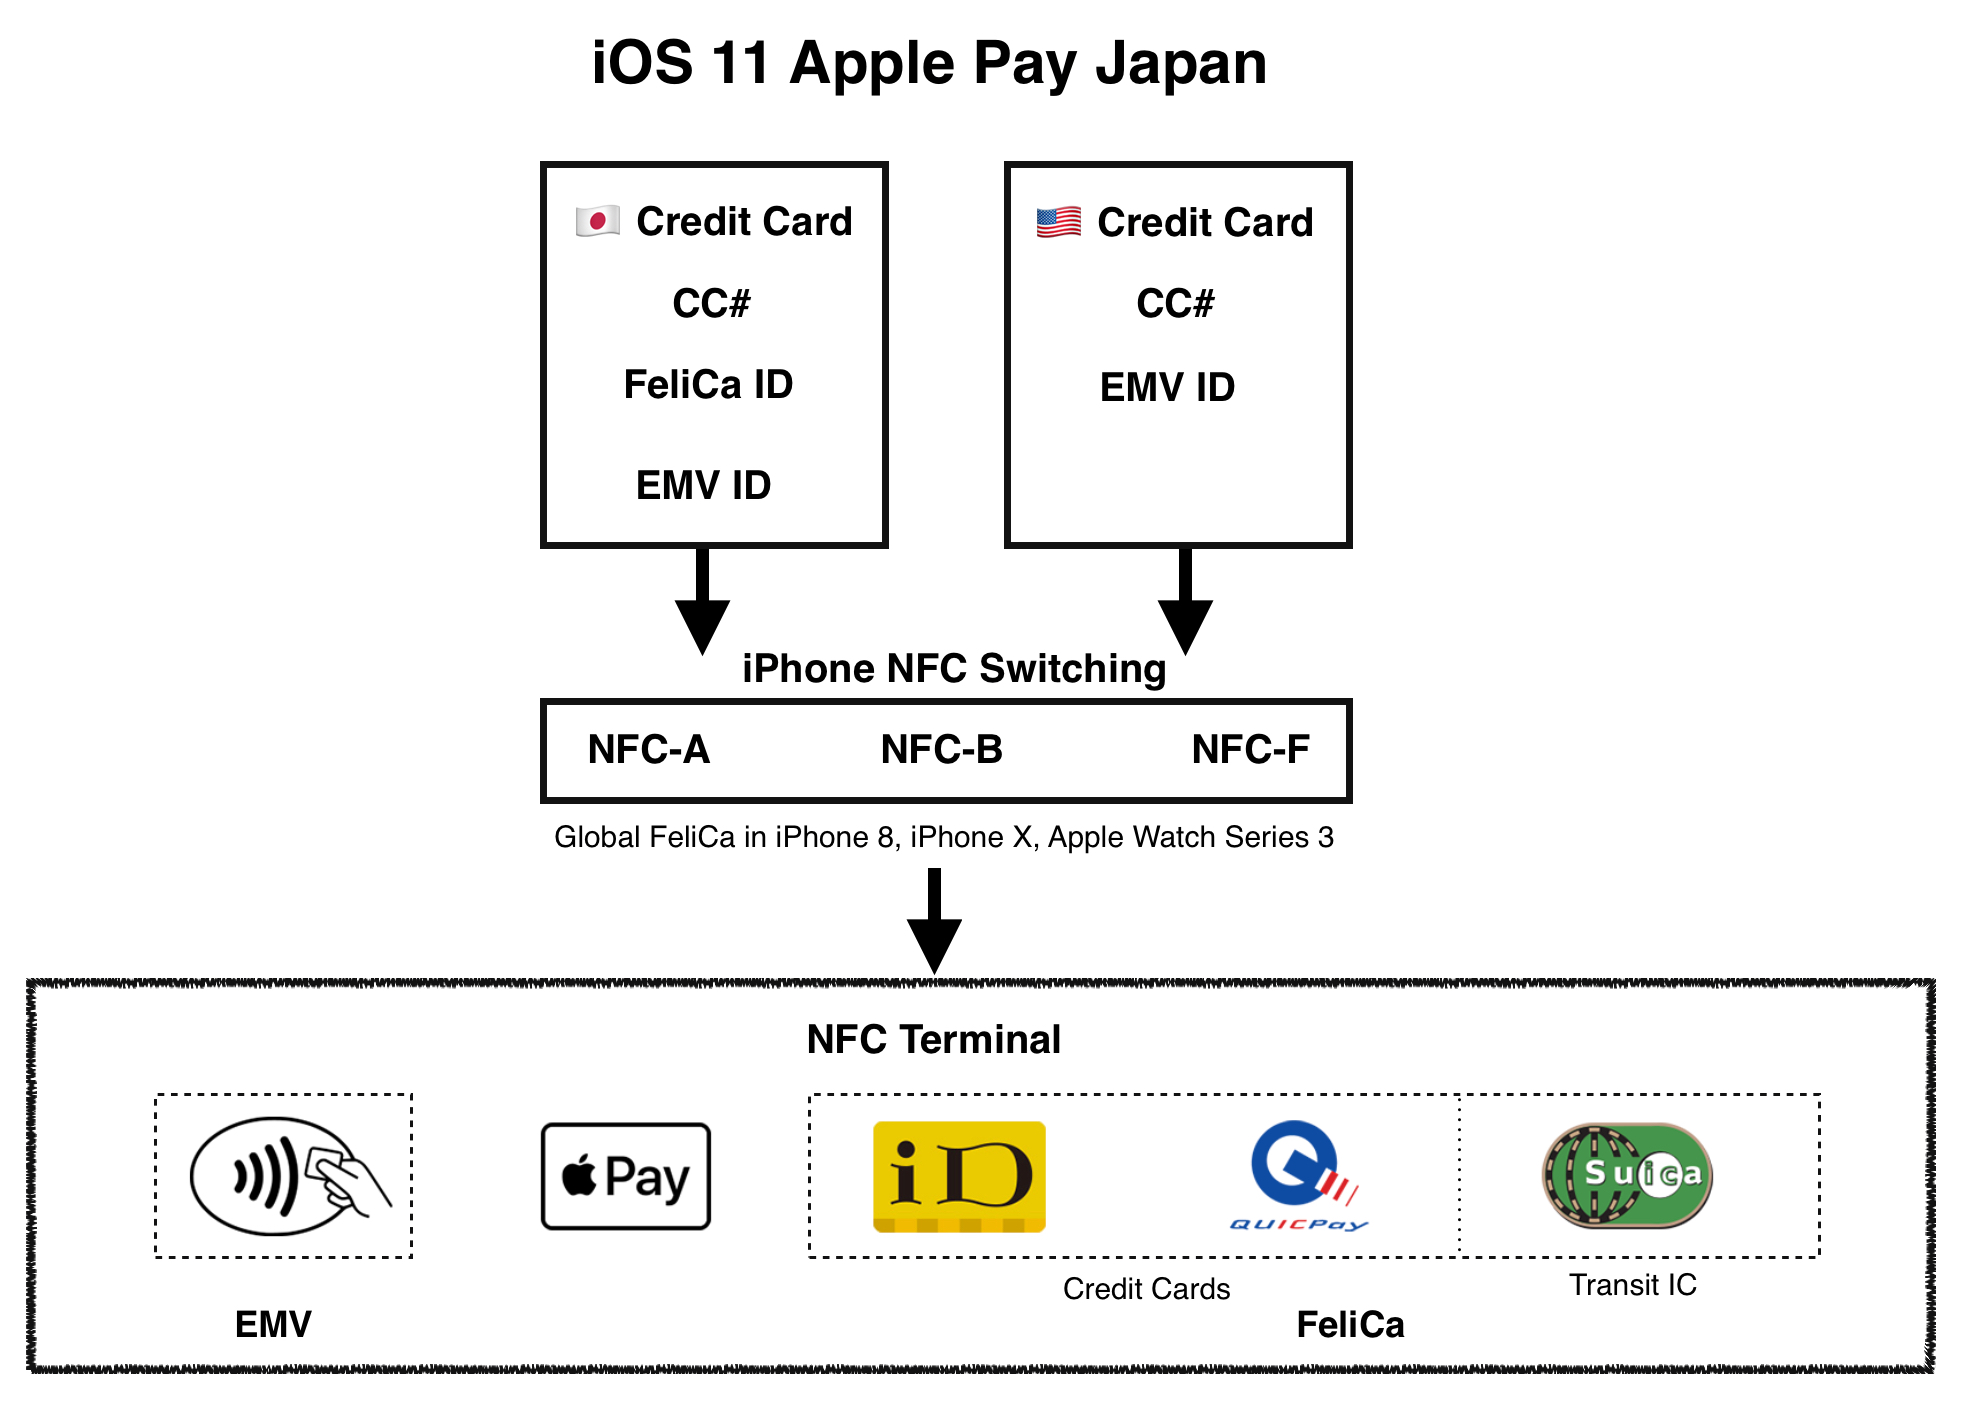 iOS 11 and global FeliCa in iPhone 8, iPhone X and Apple Watch Series 3 make Apple Pay much more flexible